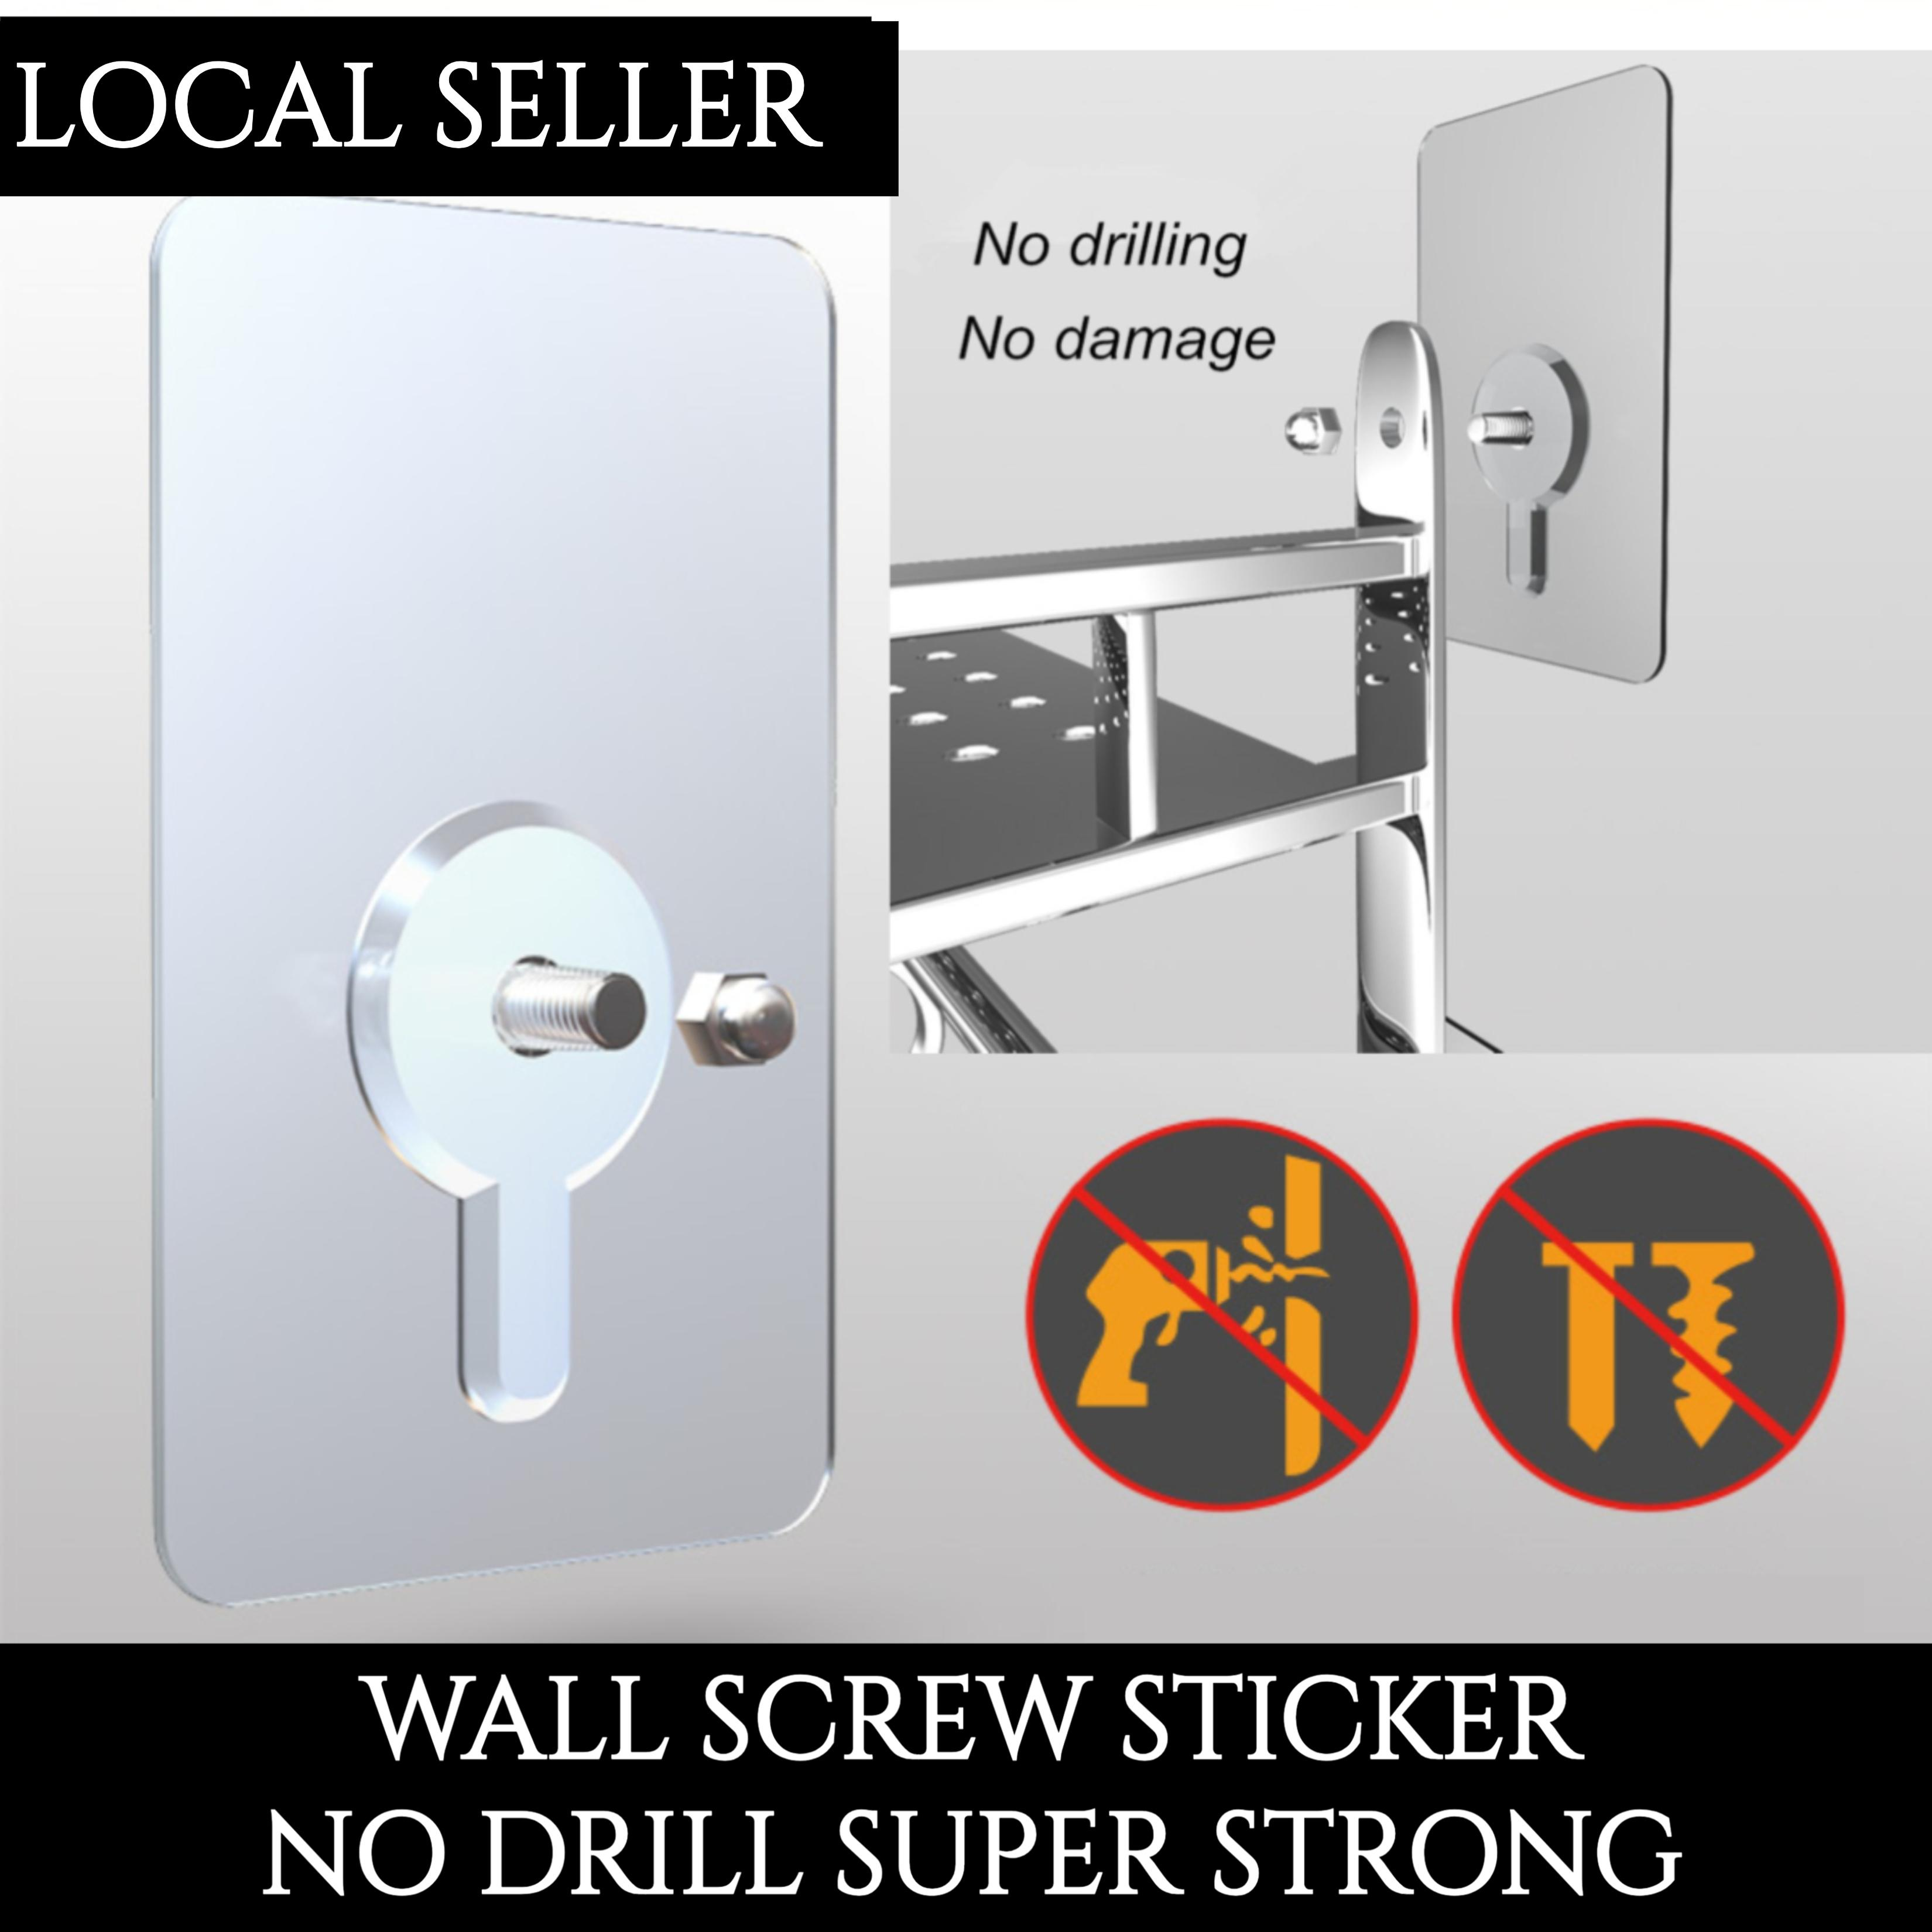 [Bundle Pack] MAGIC STICKER 2019 Latest [Thicker] Wall Screw Wall Hook Wall Mount No Drill Hook Strong Adhesive Bracket mount Bracket Screw DIY [Local Seller]